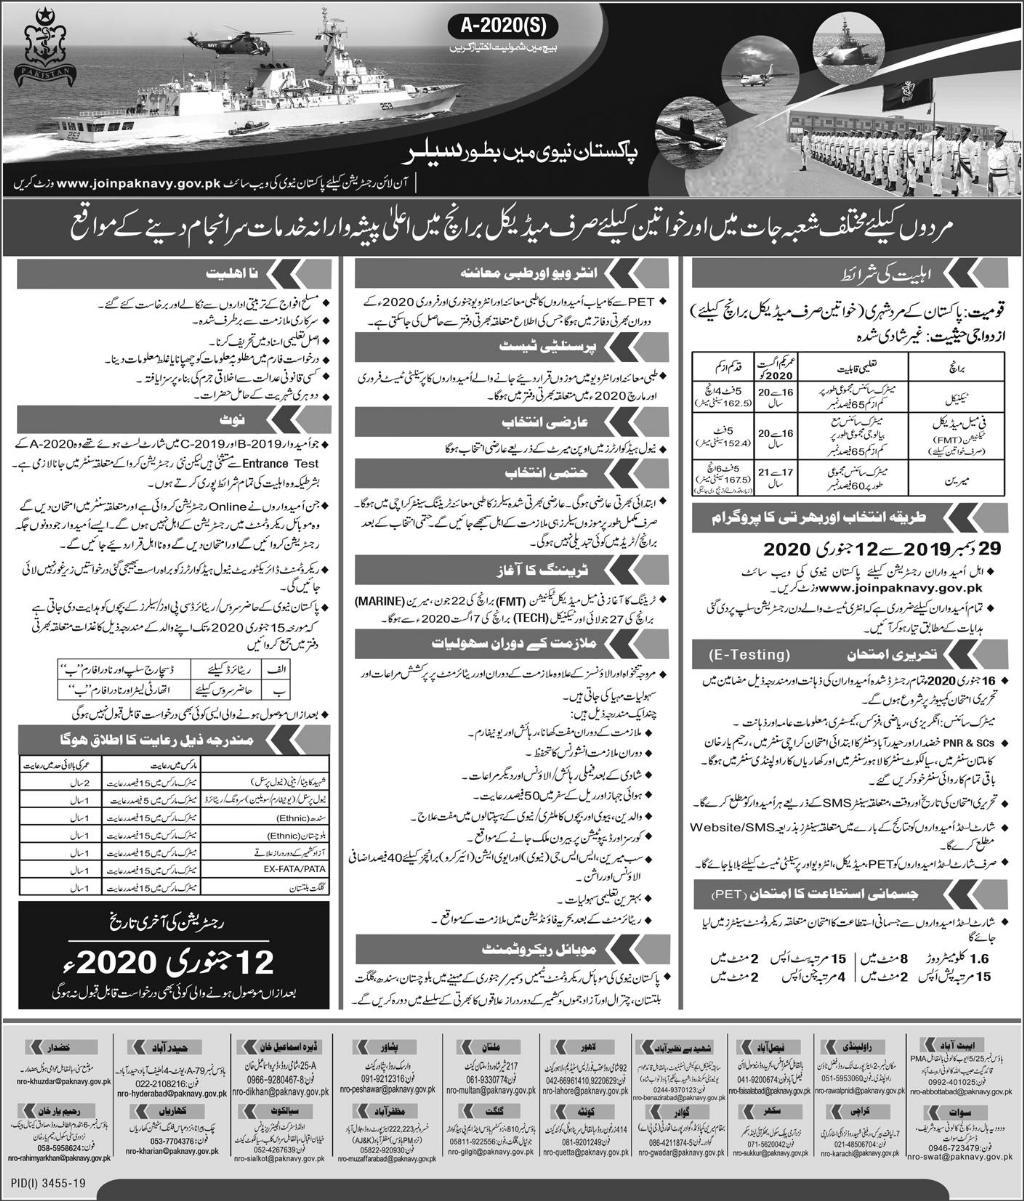 Join Pak Navy 2020 as Sailor in Technical, Medical & Marine Branches A-2020 (S) Batch Online Registration Latest